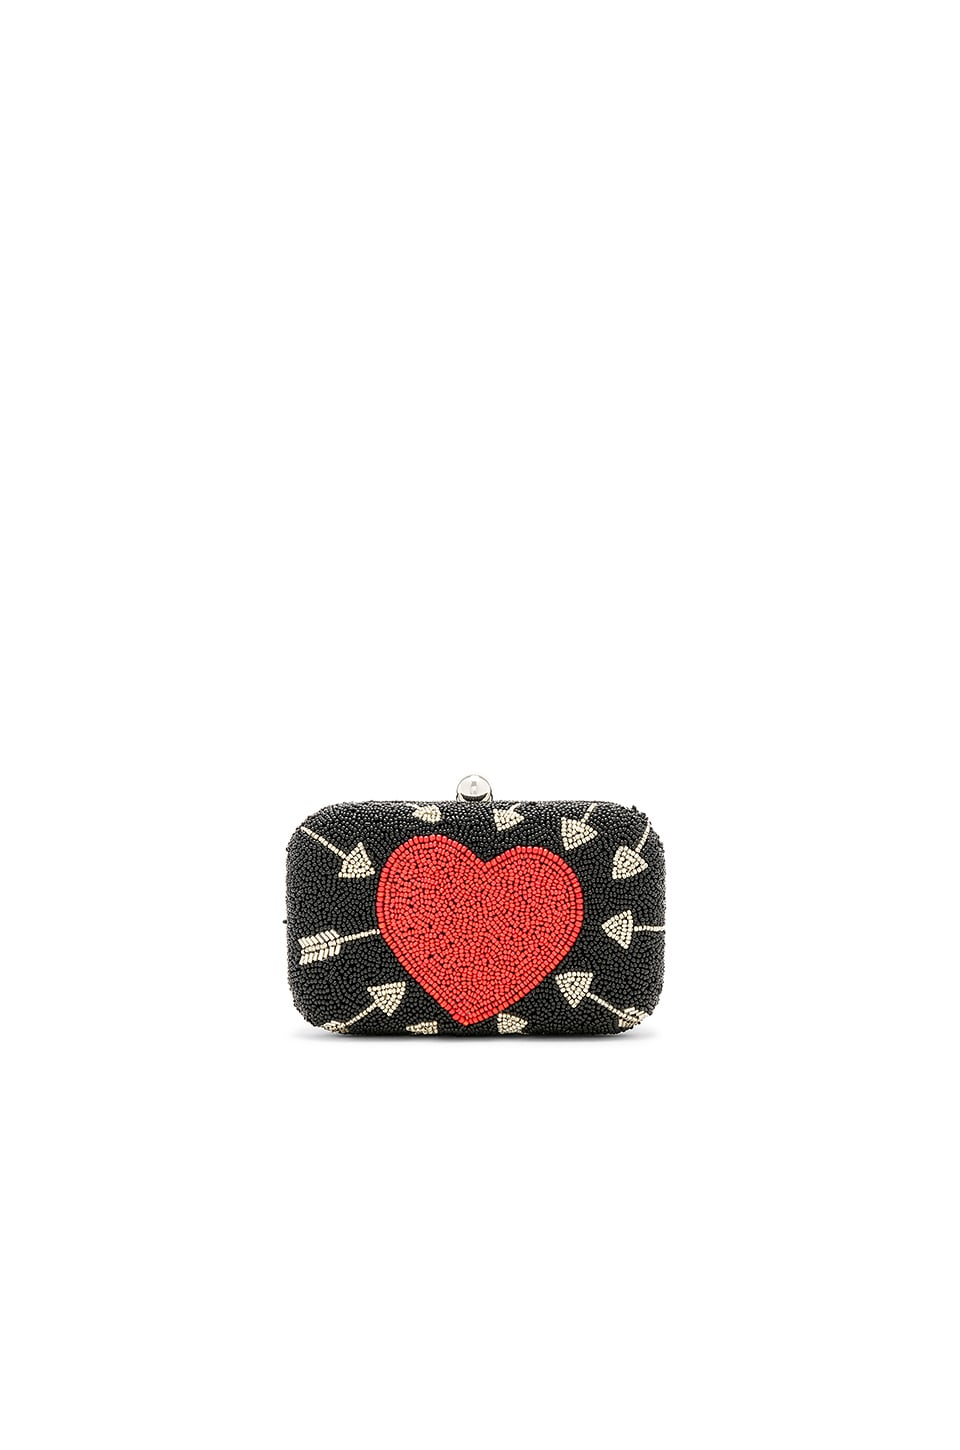 From St Xavier Cupid Box Clutch in Black & Red